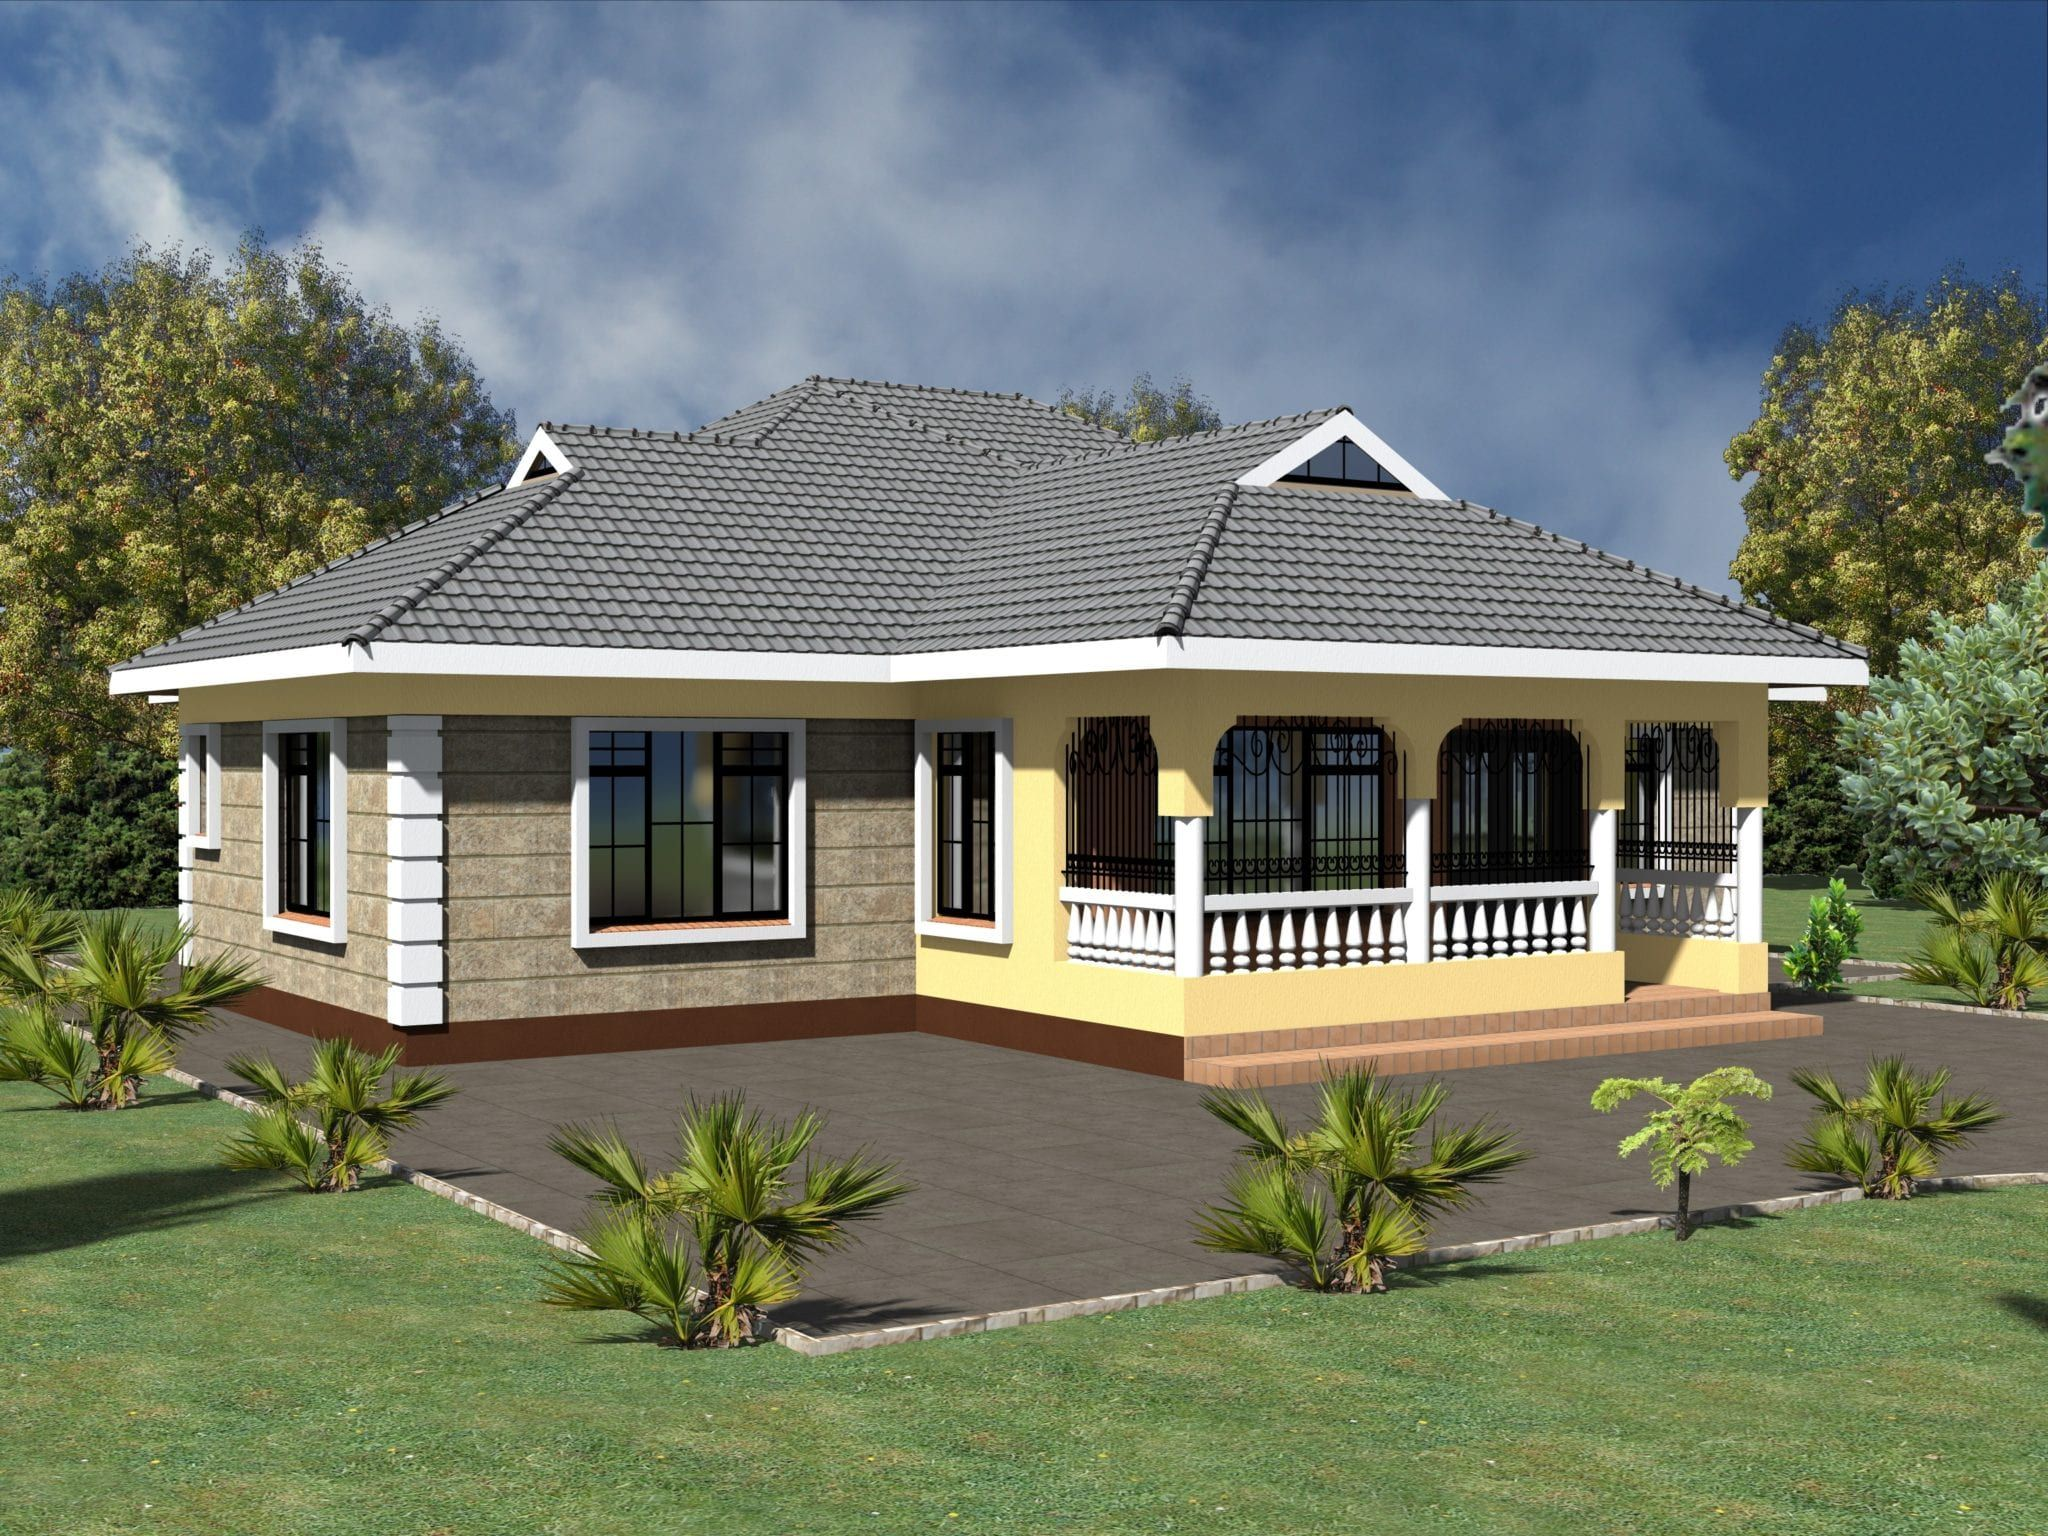 Best House Plans In Kenya 6 House Plans In Kenya In 2020 Four Bedroom House Plans House Designs In Kenya Modern Bungalow House